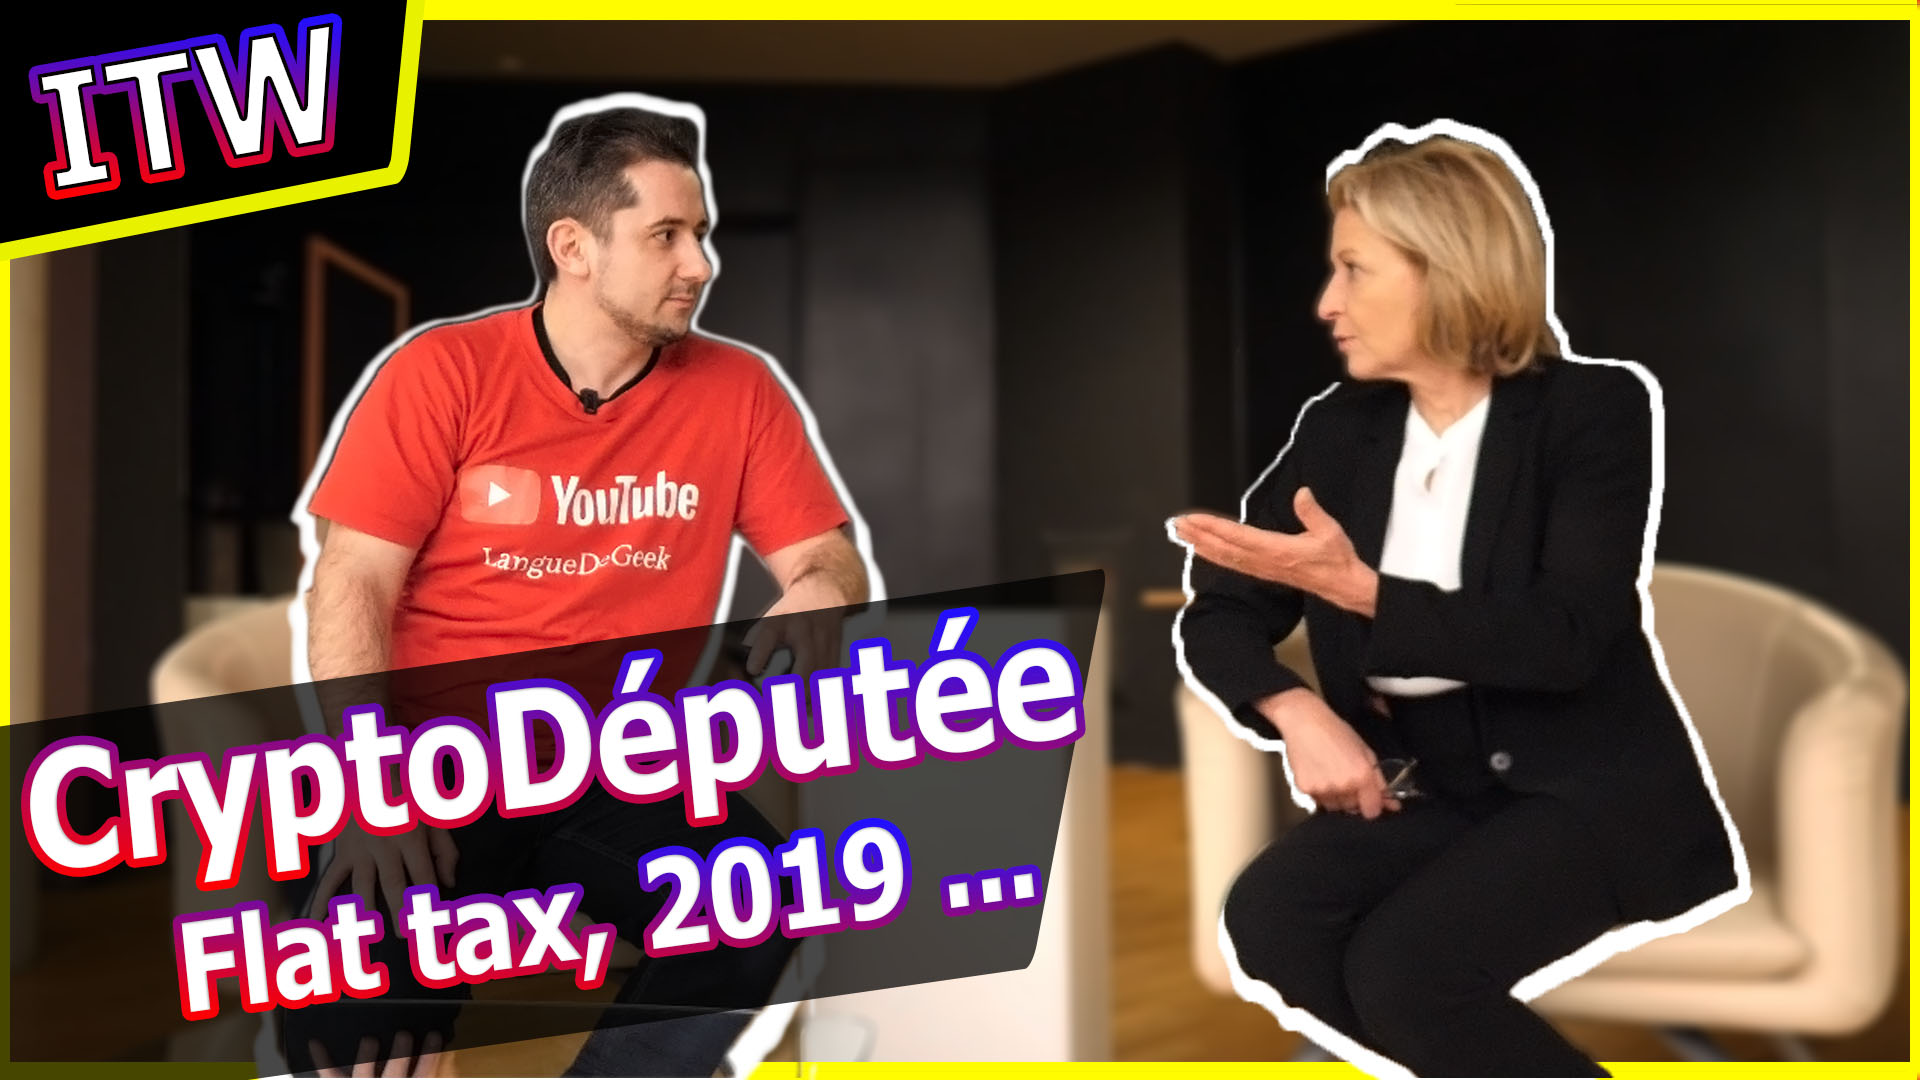 [Interview] Laure de La Raudière #Blockchain #Flattax #Amendements